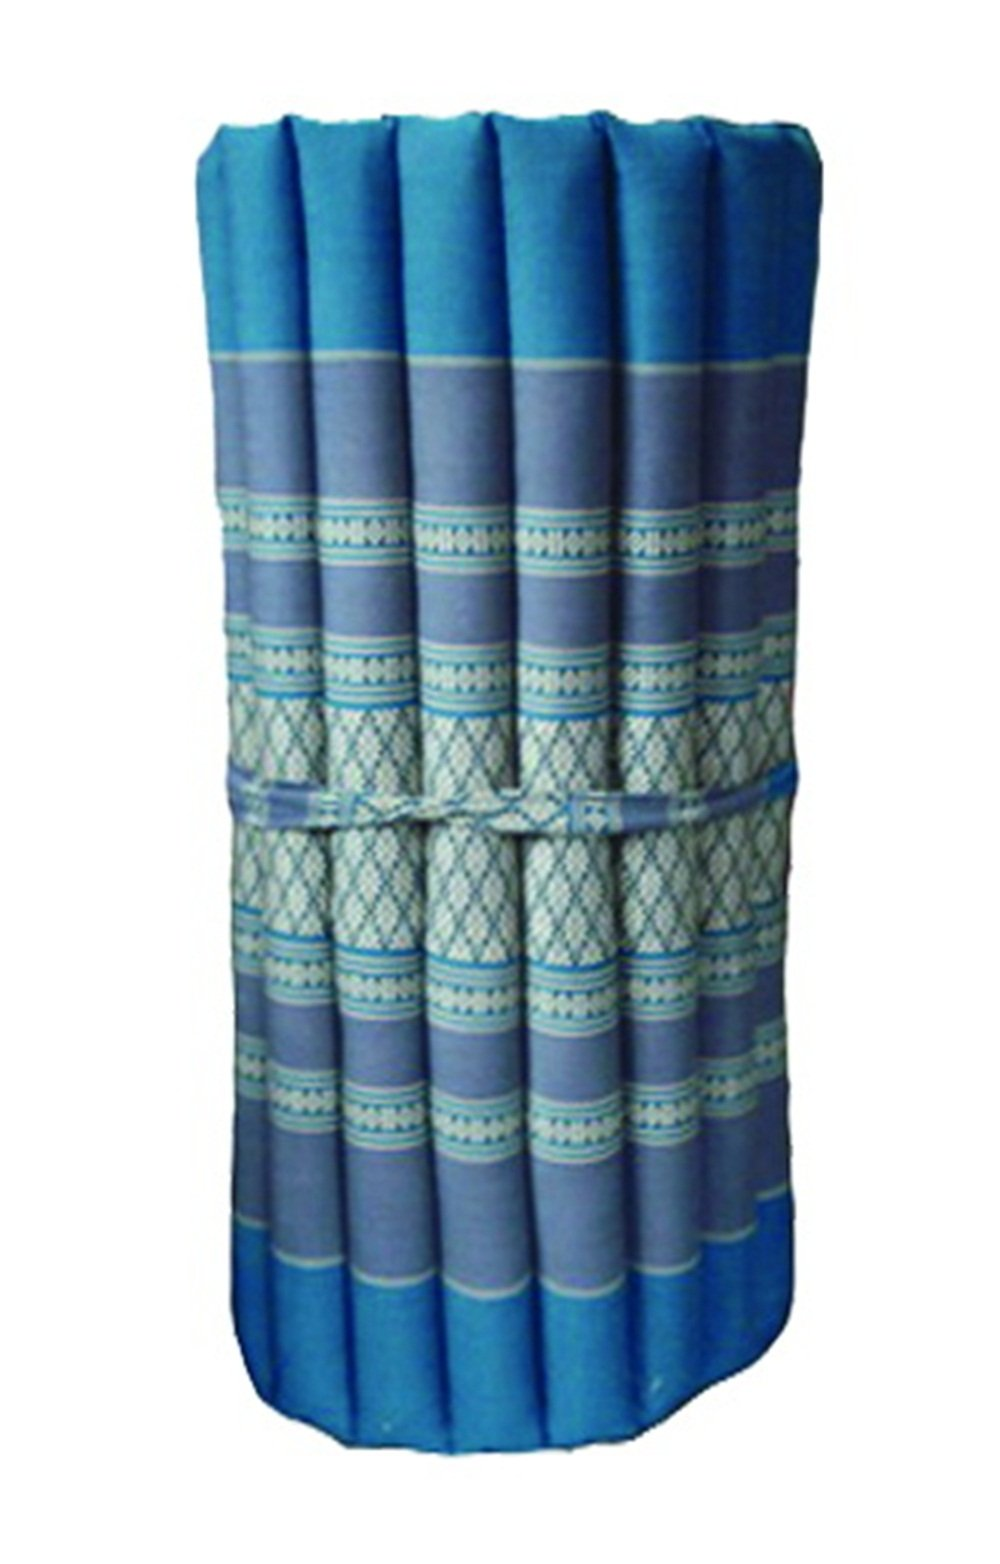 Thai Mattress Roll Up, 21.65 * 63 * 3inch, Kapok, Blue by Thai Mattress